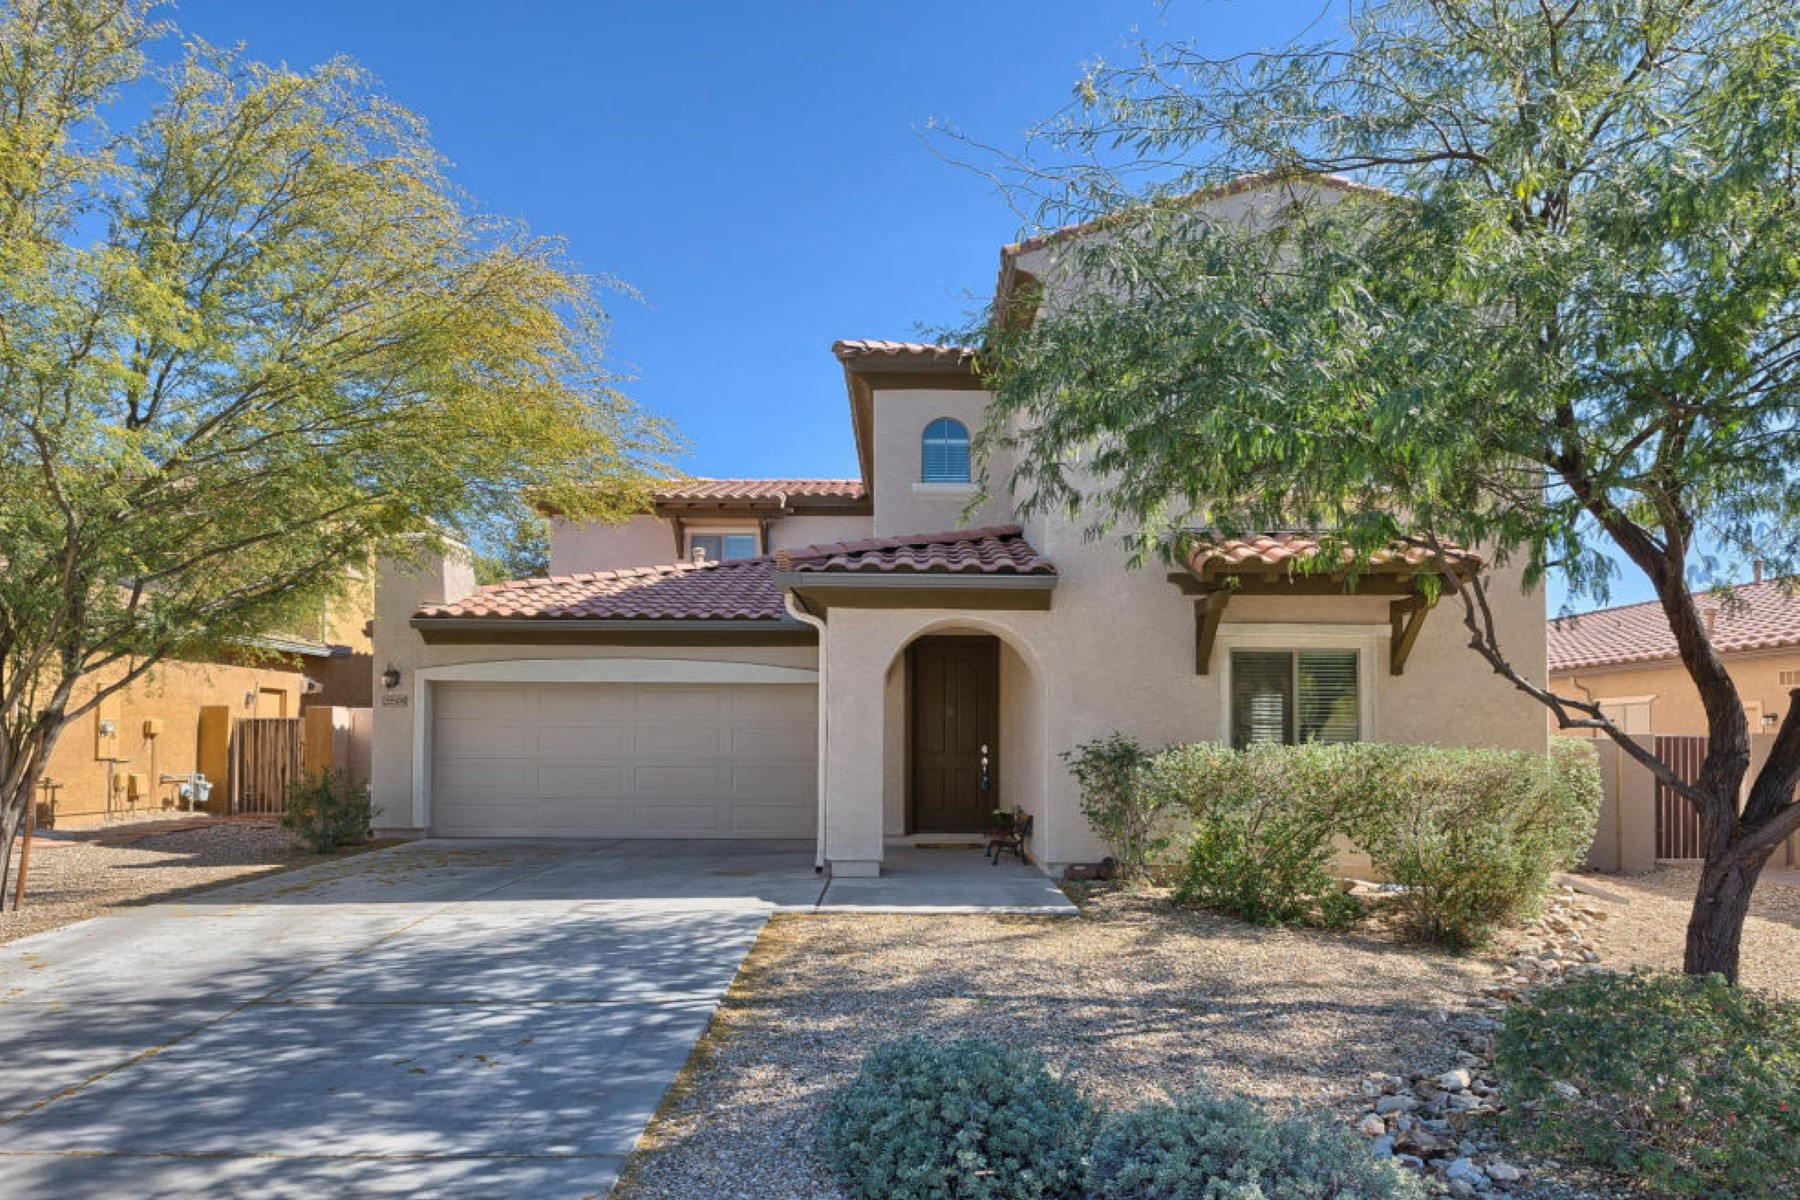 一戸建て のために 売買 アット highly sought after Sundance model sits in the community of Stetson Valley. 25509 N 54TH LN Phoenix, アリゾナ 85083 アメリカ合衆国